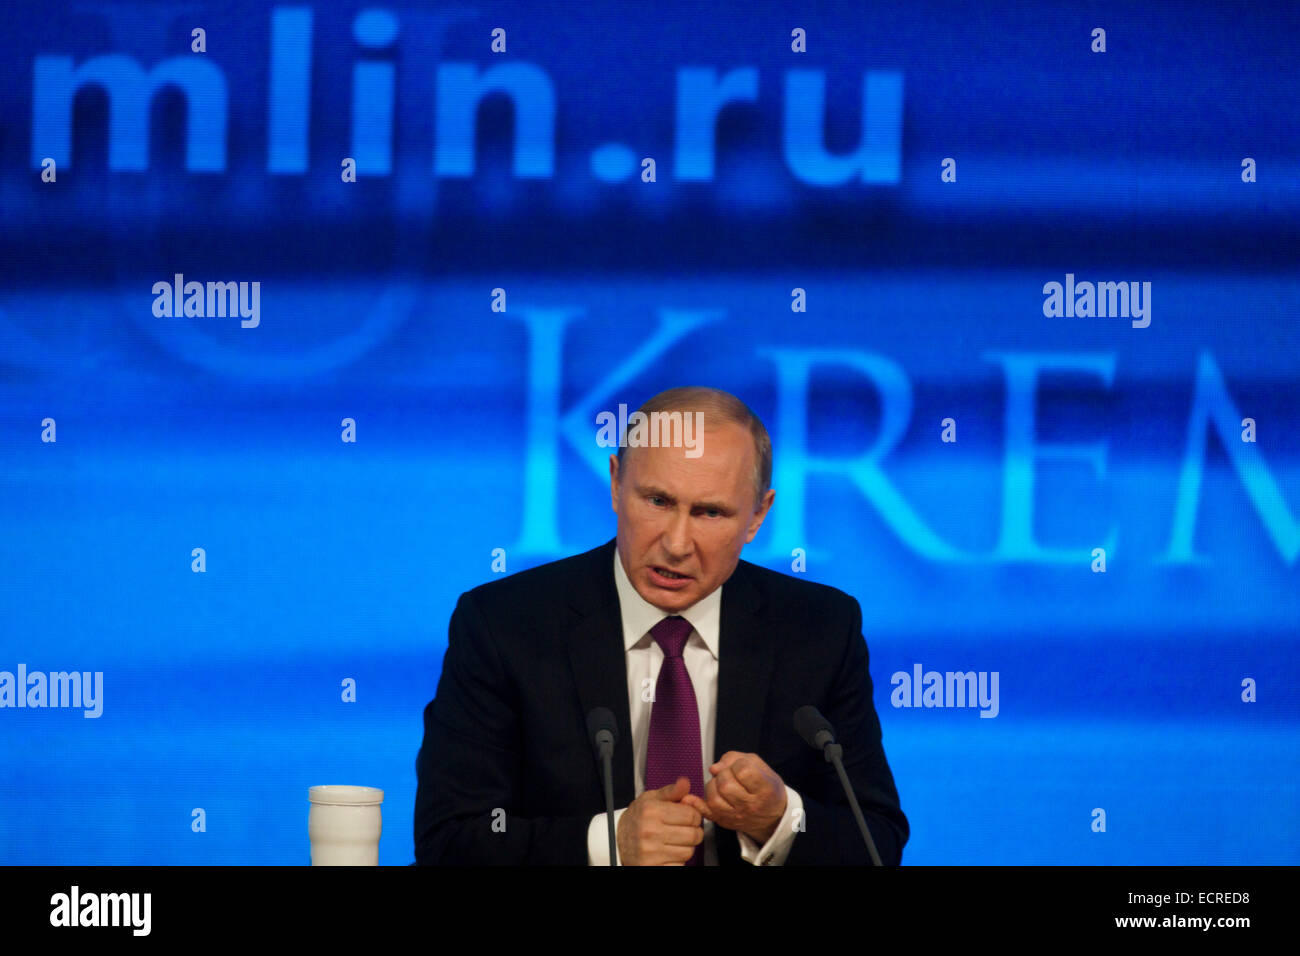 Moscow, Russia. 18th Dec, 2014. Vladimir Putin's annual press conference in Moscow - Stock Image